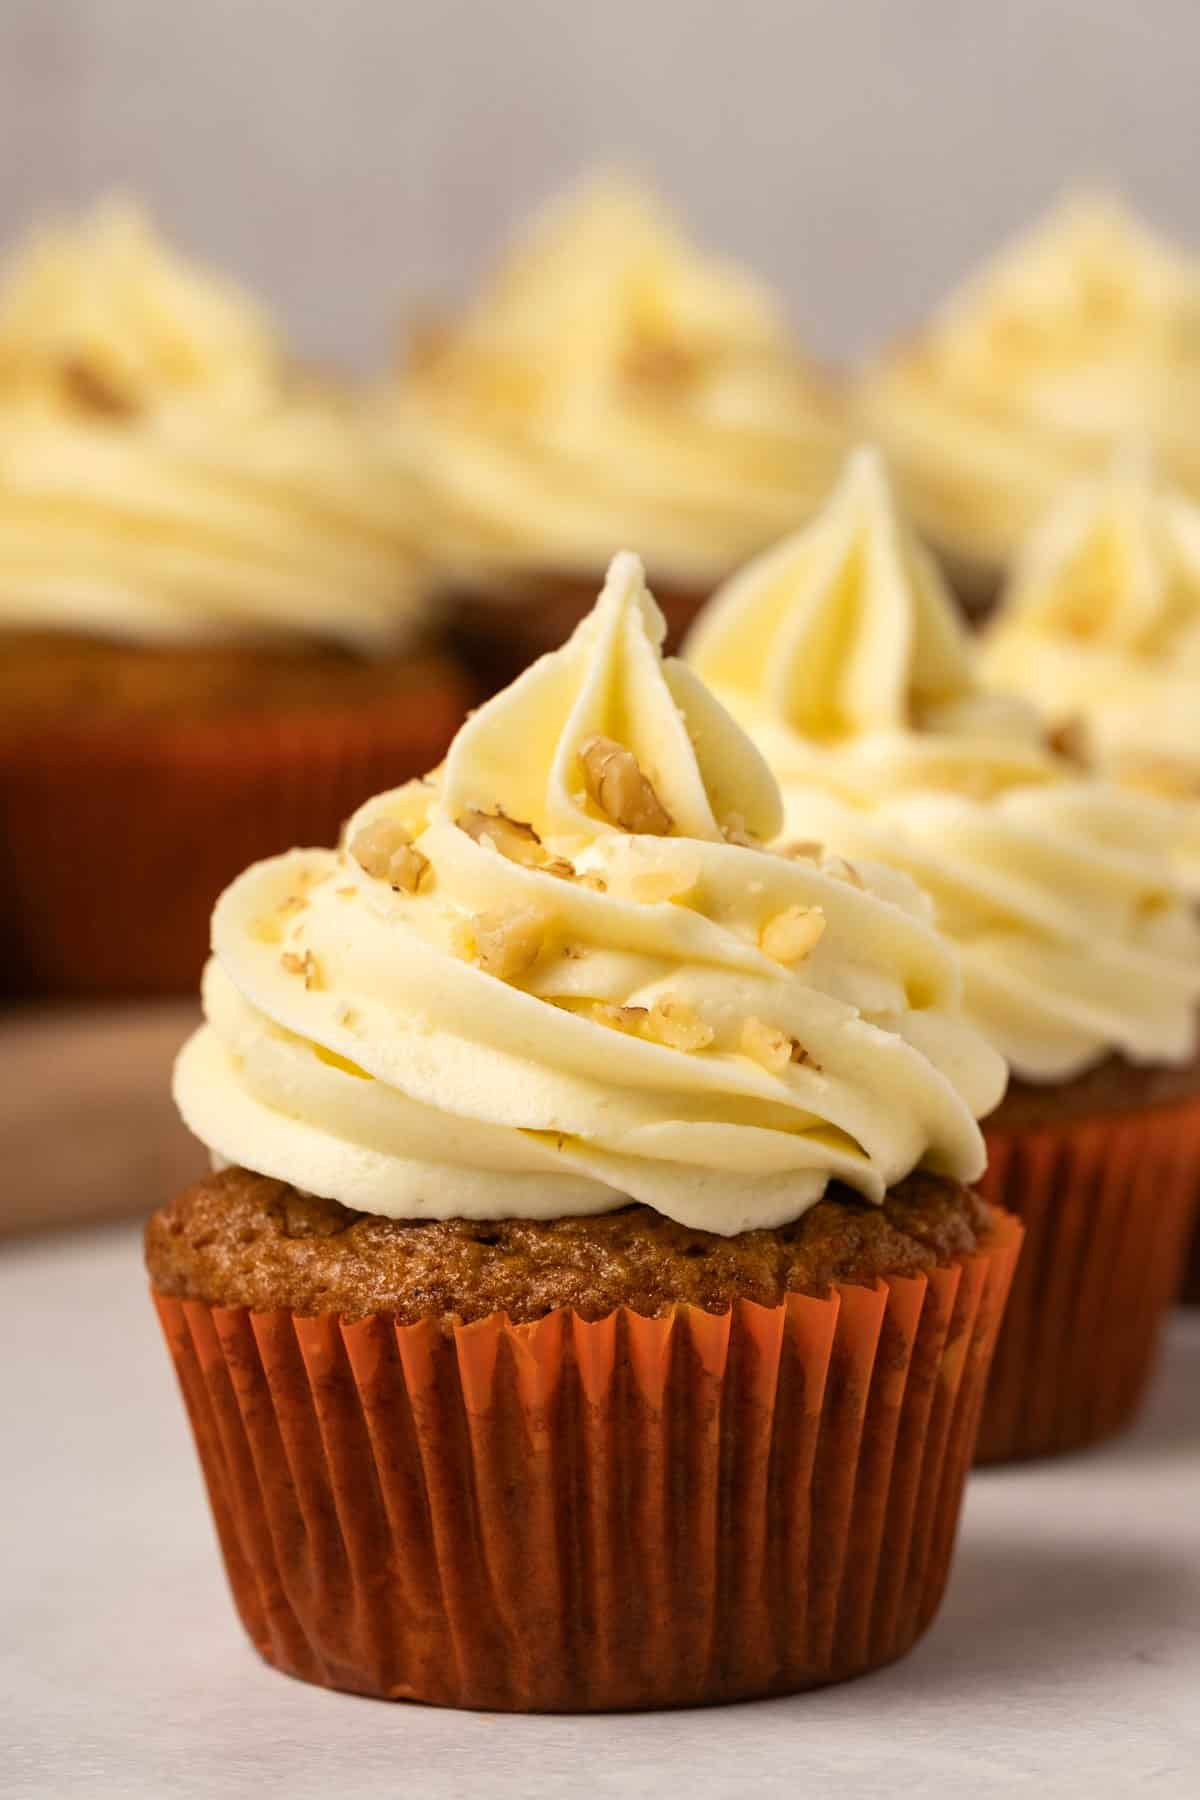 Cupcakes with piped frosting and chopped nuts.